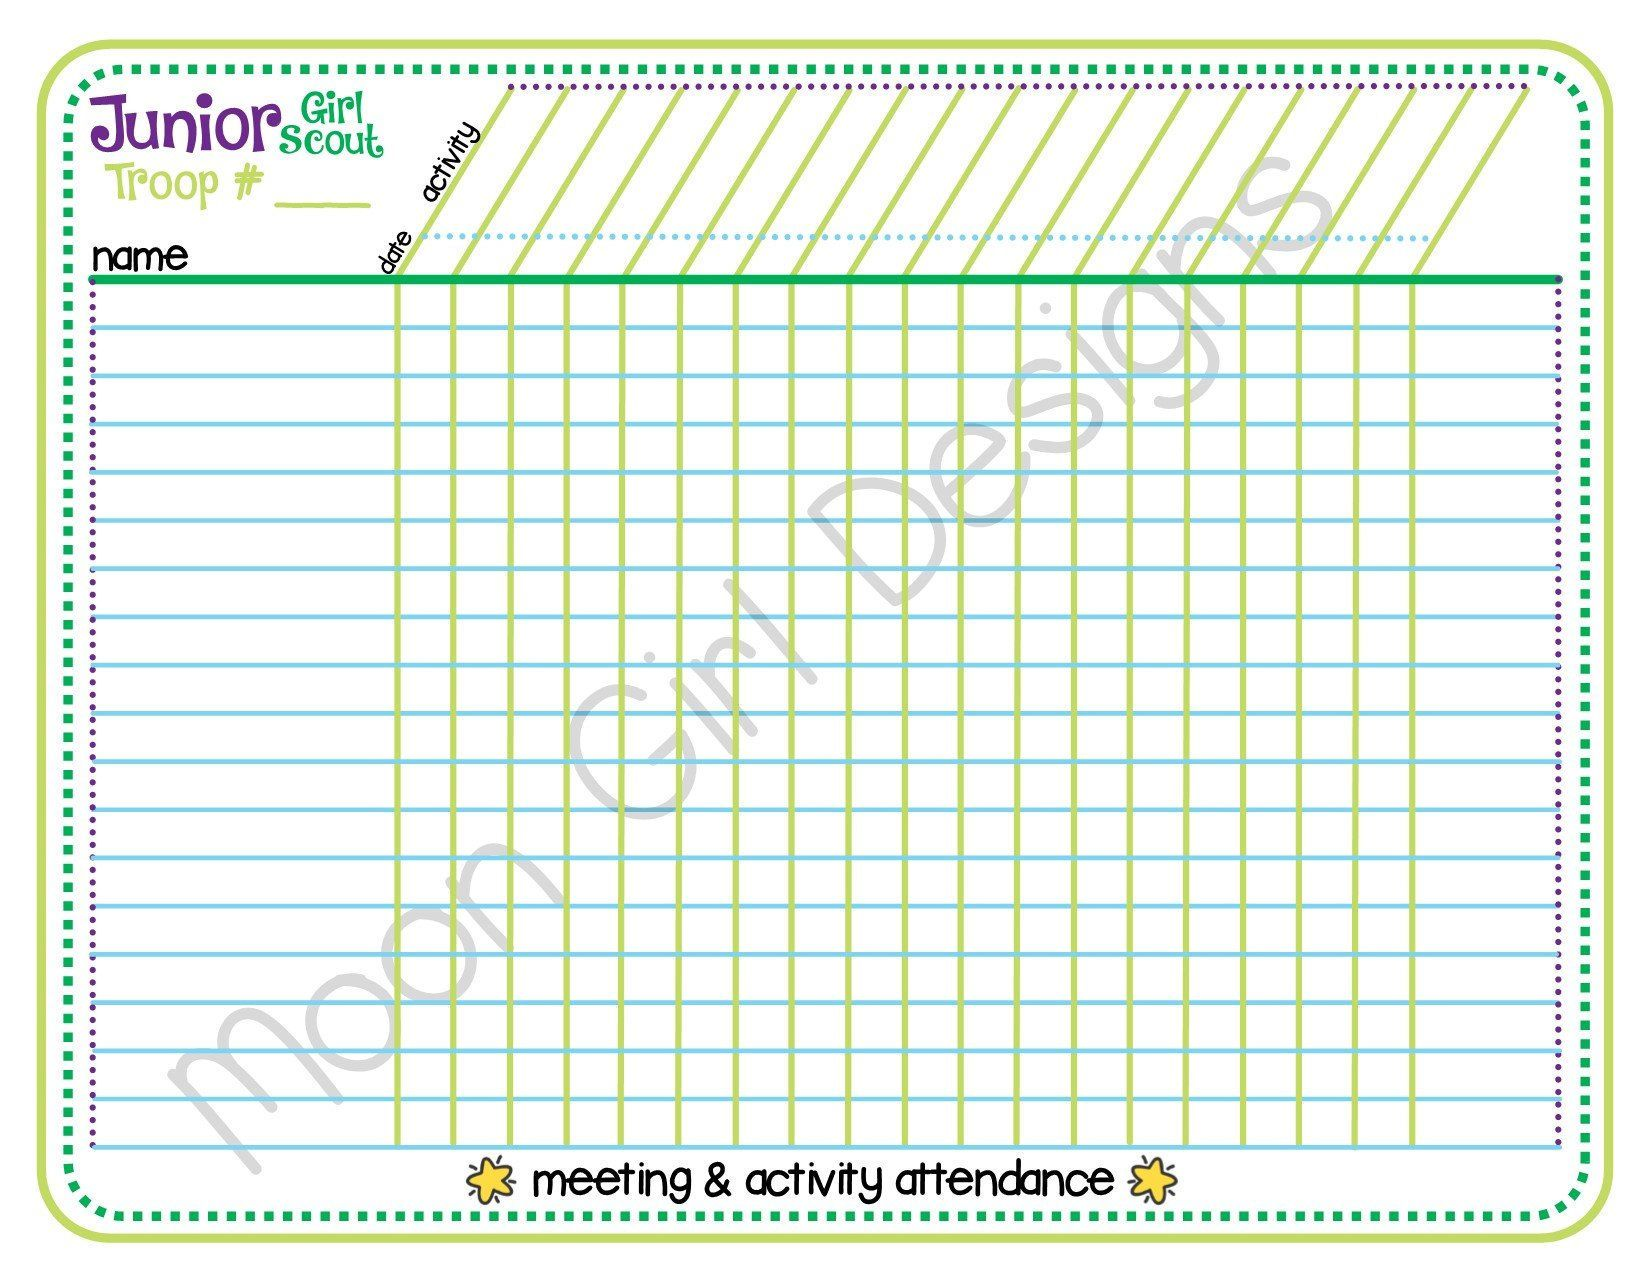 Junior Girl Scout Meeting Activity Attendance Roster